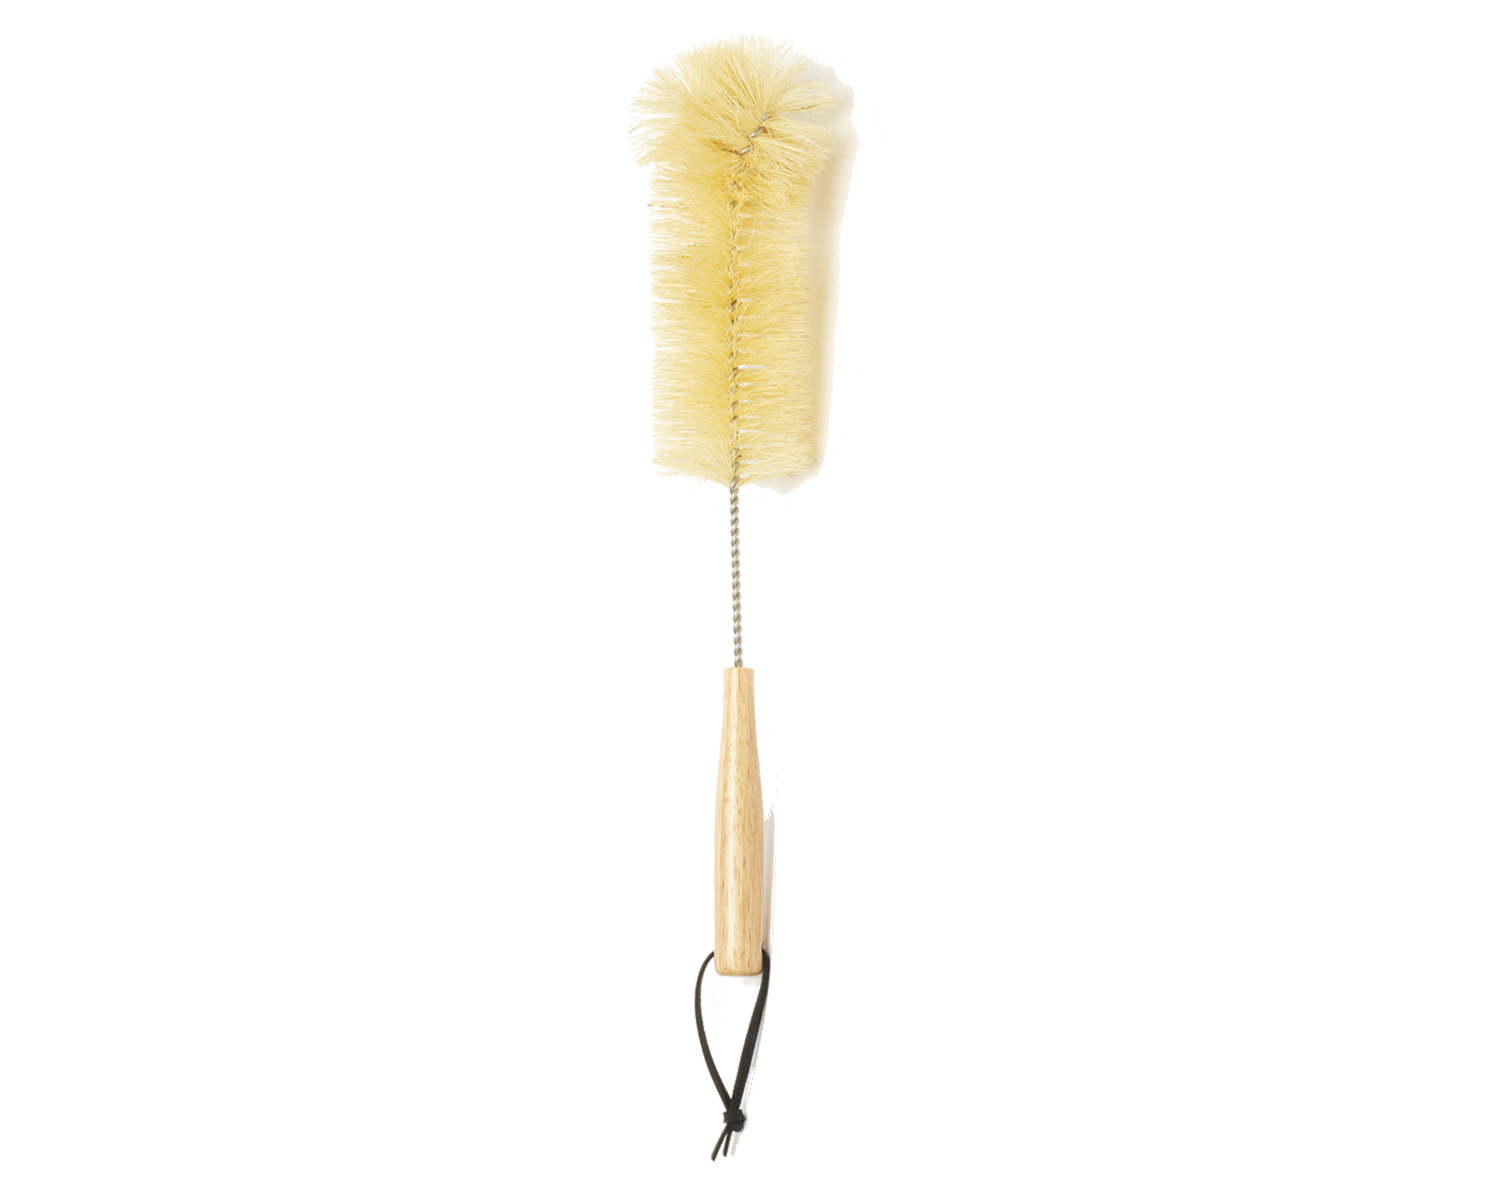 Hitch Bottle Brush with Natural Sisal Fibers, a stainless steel rod, and wooden handle